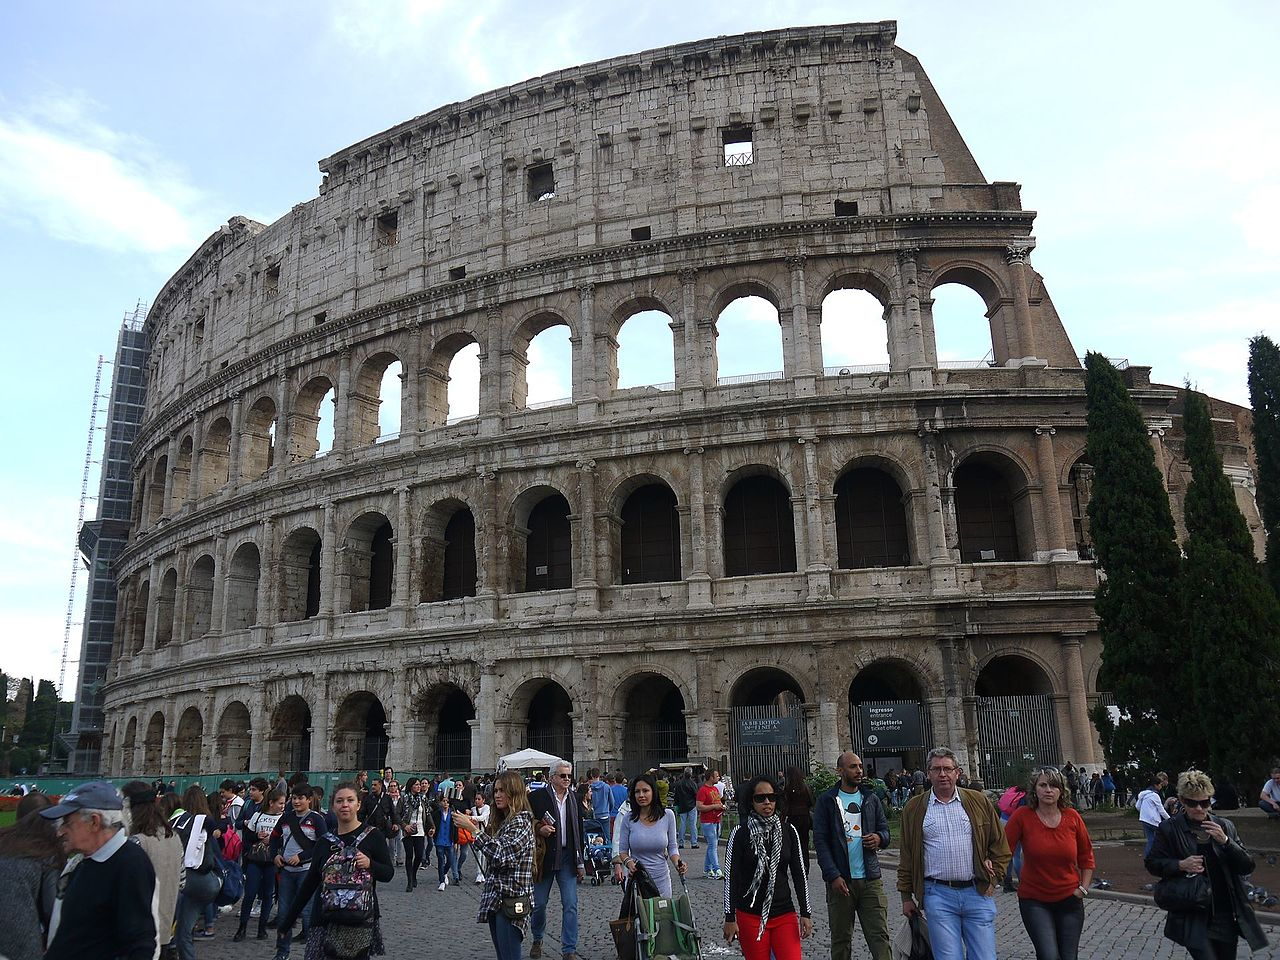 Coloseum photo by krysi@